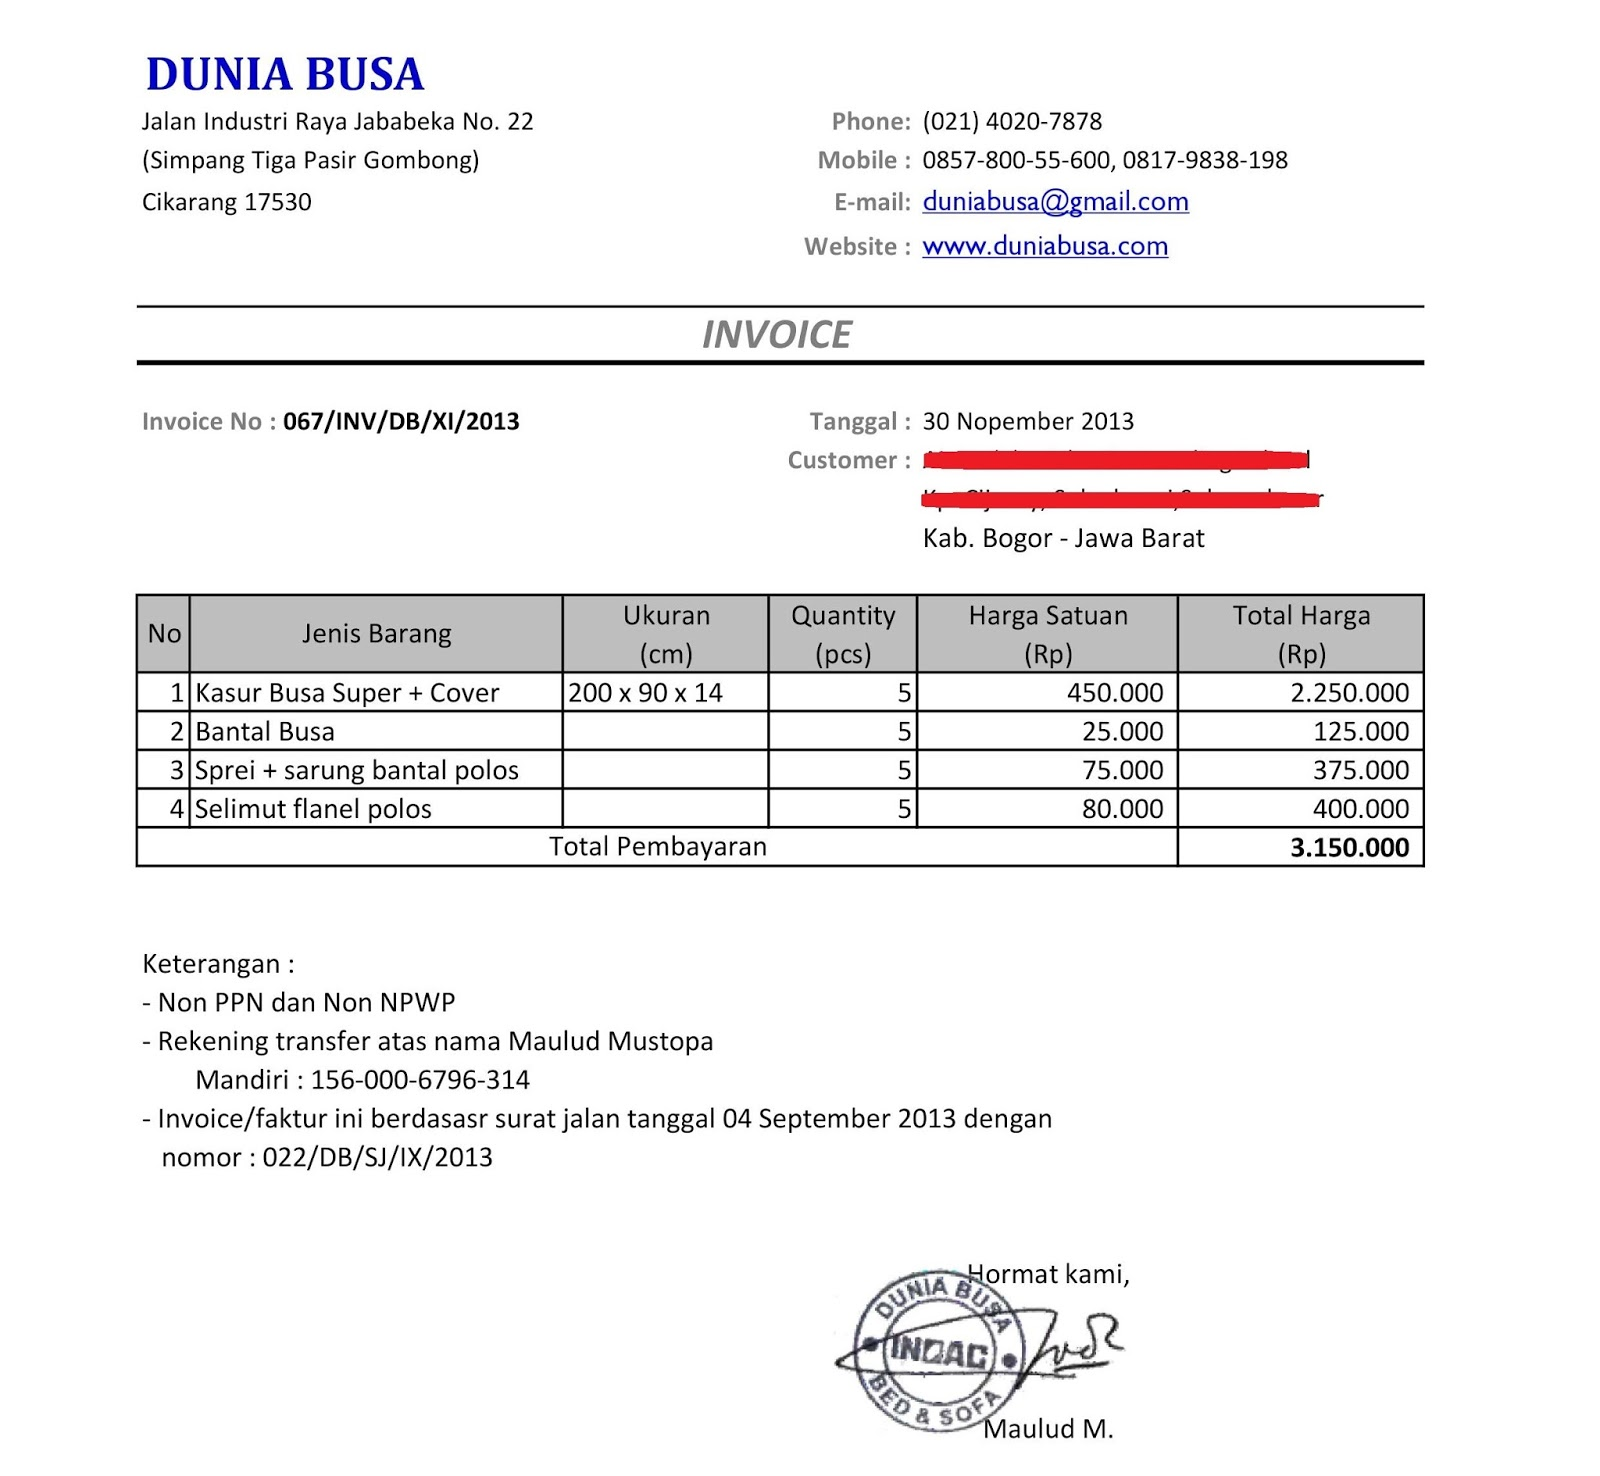 Centralasianshepherdus  Nice Free Invoice Online  Create Invoice Online  Invoice Template  With Interesting Contoh Format Invoice Atau Surat Tagihan  Brankas Arsip  Free Invoice Online With Beautiful Create An Invoice Also Online Invoicing In Addition Invoice To Go And Invoicing As Well As Pro Forma Invoice Additionally Invoice Template Google Docs From Sklepco With Centralasianshepherdus  Interesting Free Invoice Online  Create Invoice Online  Invoice Template  With Beautiful Contoh Format Invoice Atau Surat Tagihan  Brankas Arsip  Free Invoice Online And Nice Create An Invoice Also Online Invoicing In Addition Invoice To Go From Sklepco